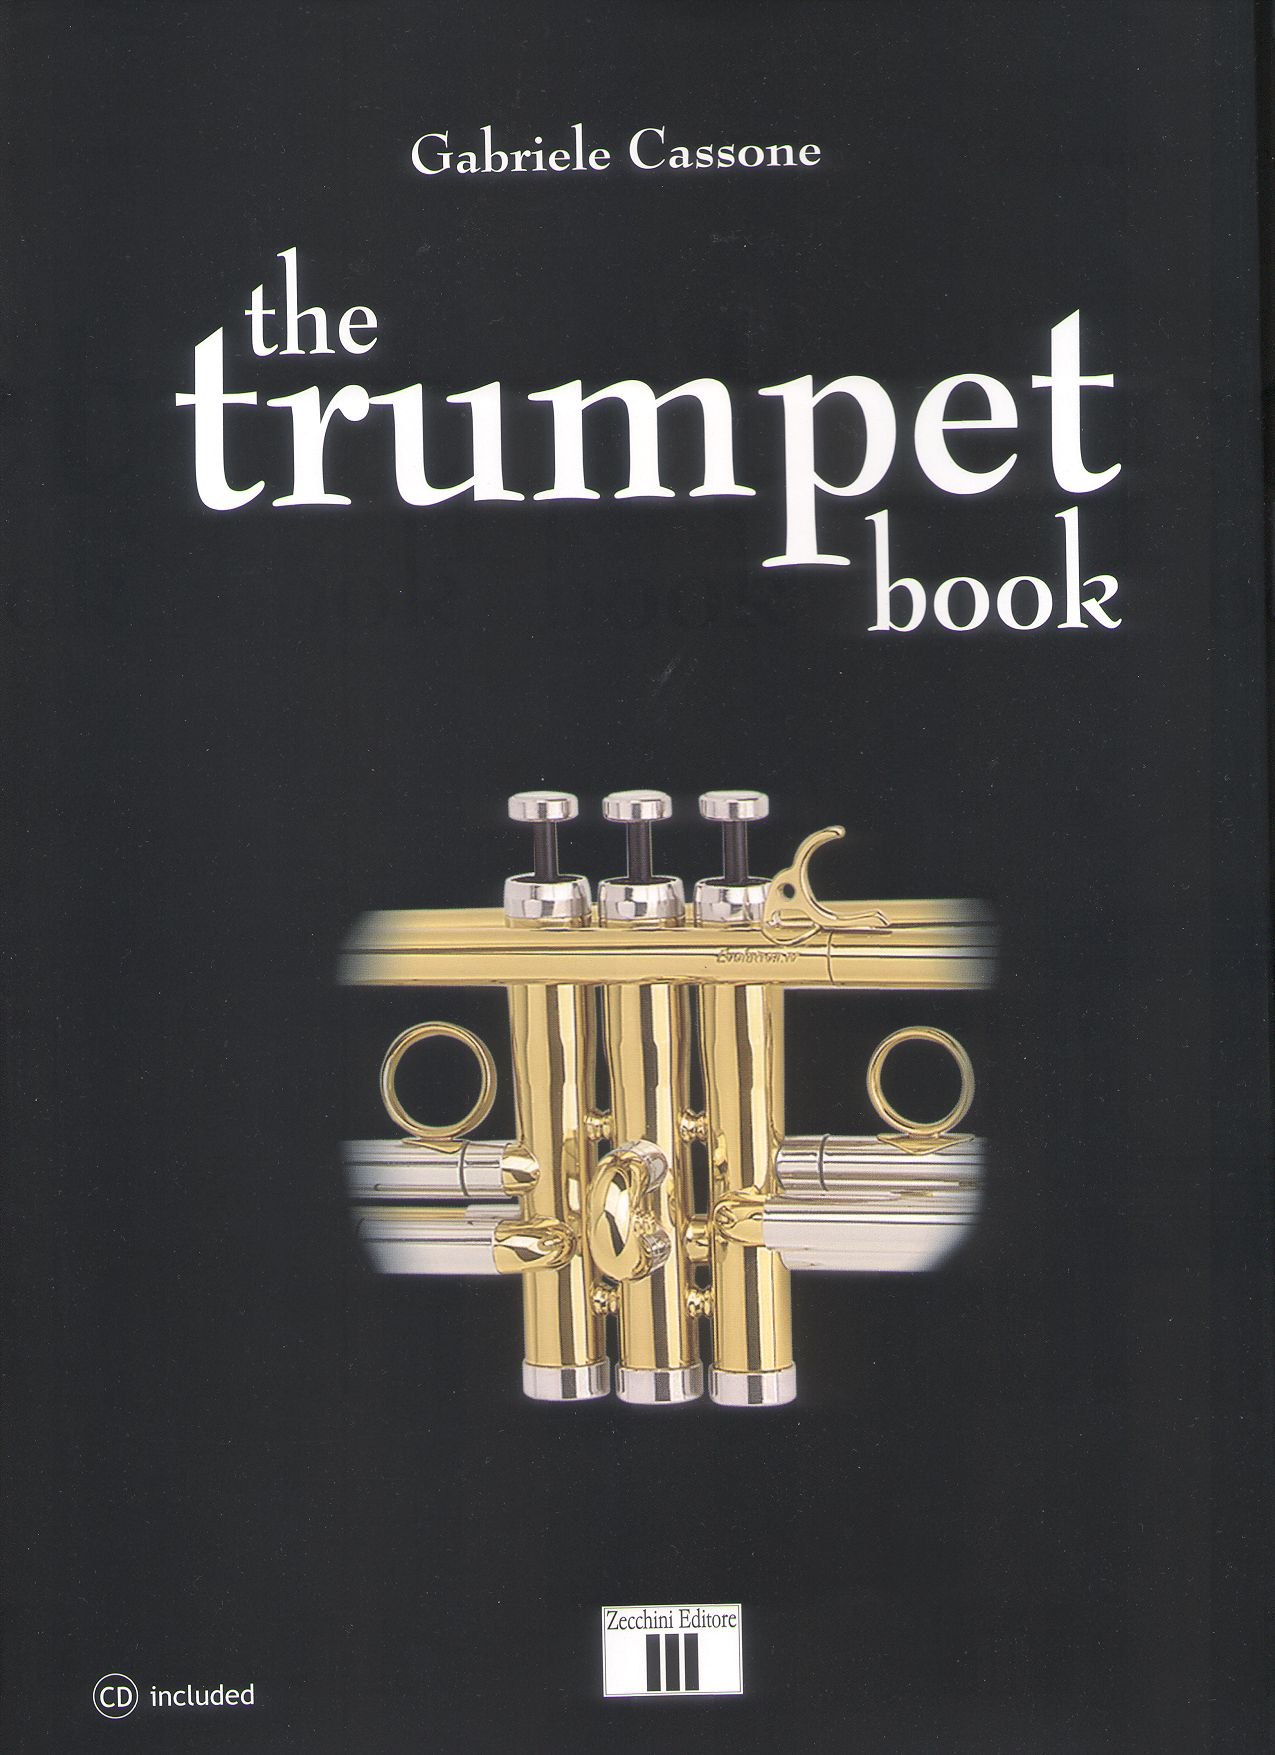 The Trumpet Book by Gabriele Cassone